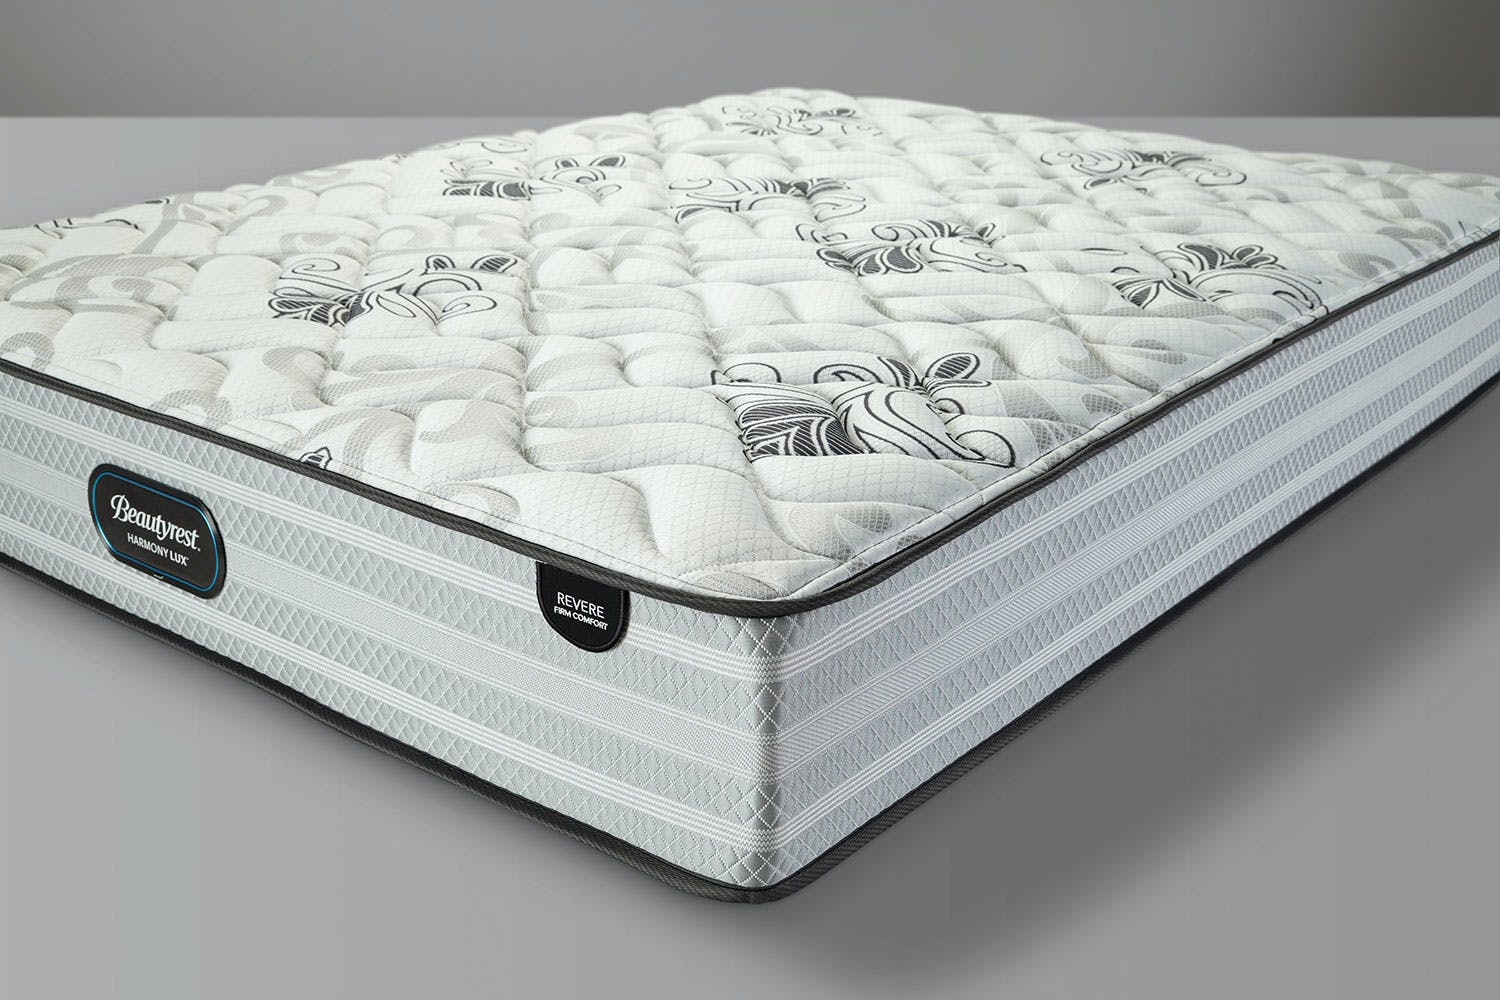 Revere Firm Super King Mattress by Beautyrest